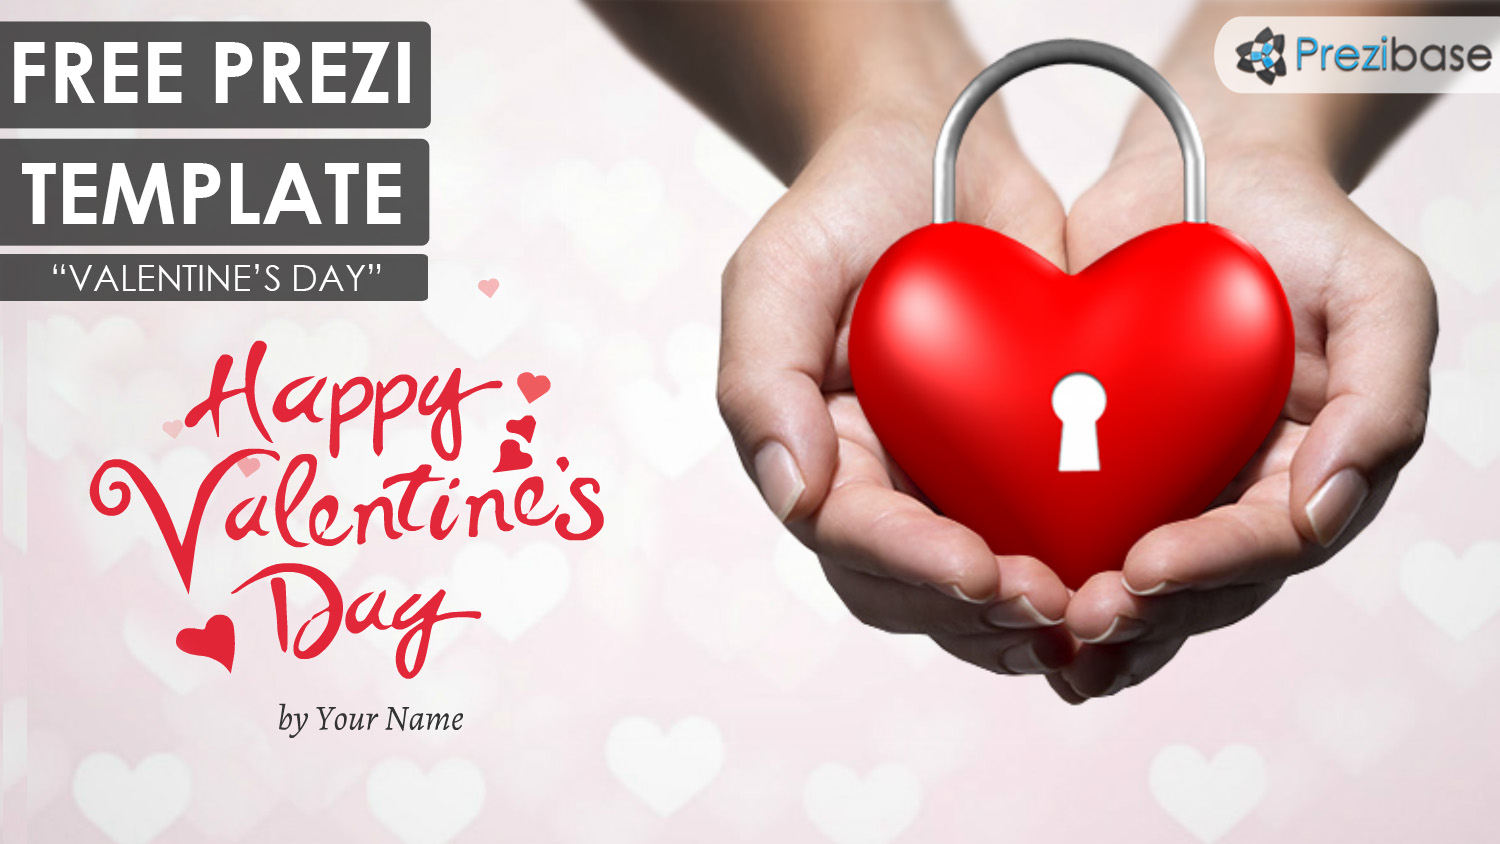 Valentines Day Prezi Template – Create Your Own Valentine Card Online